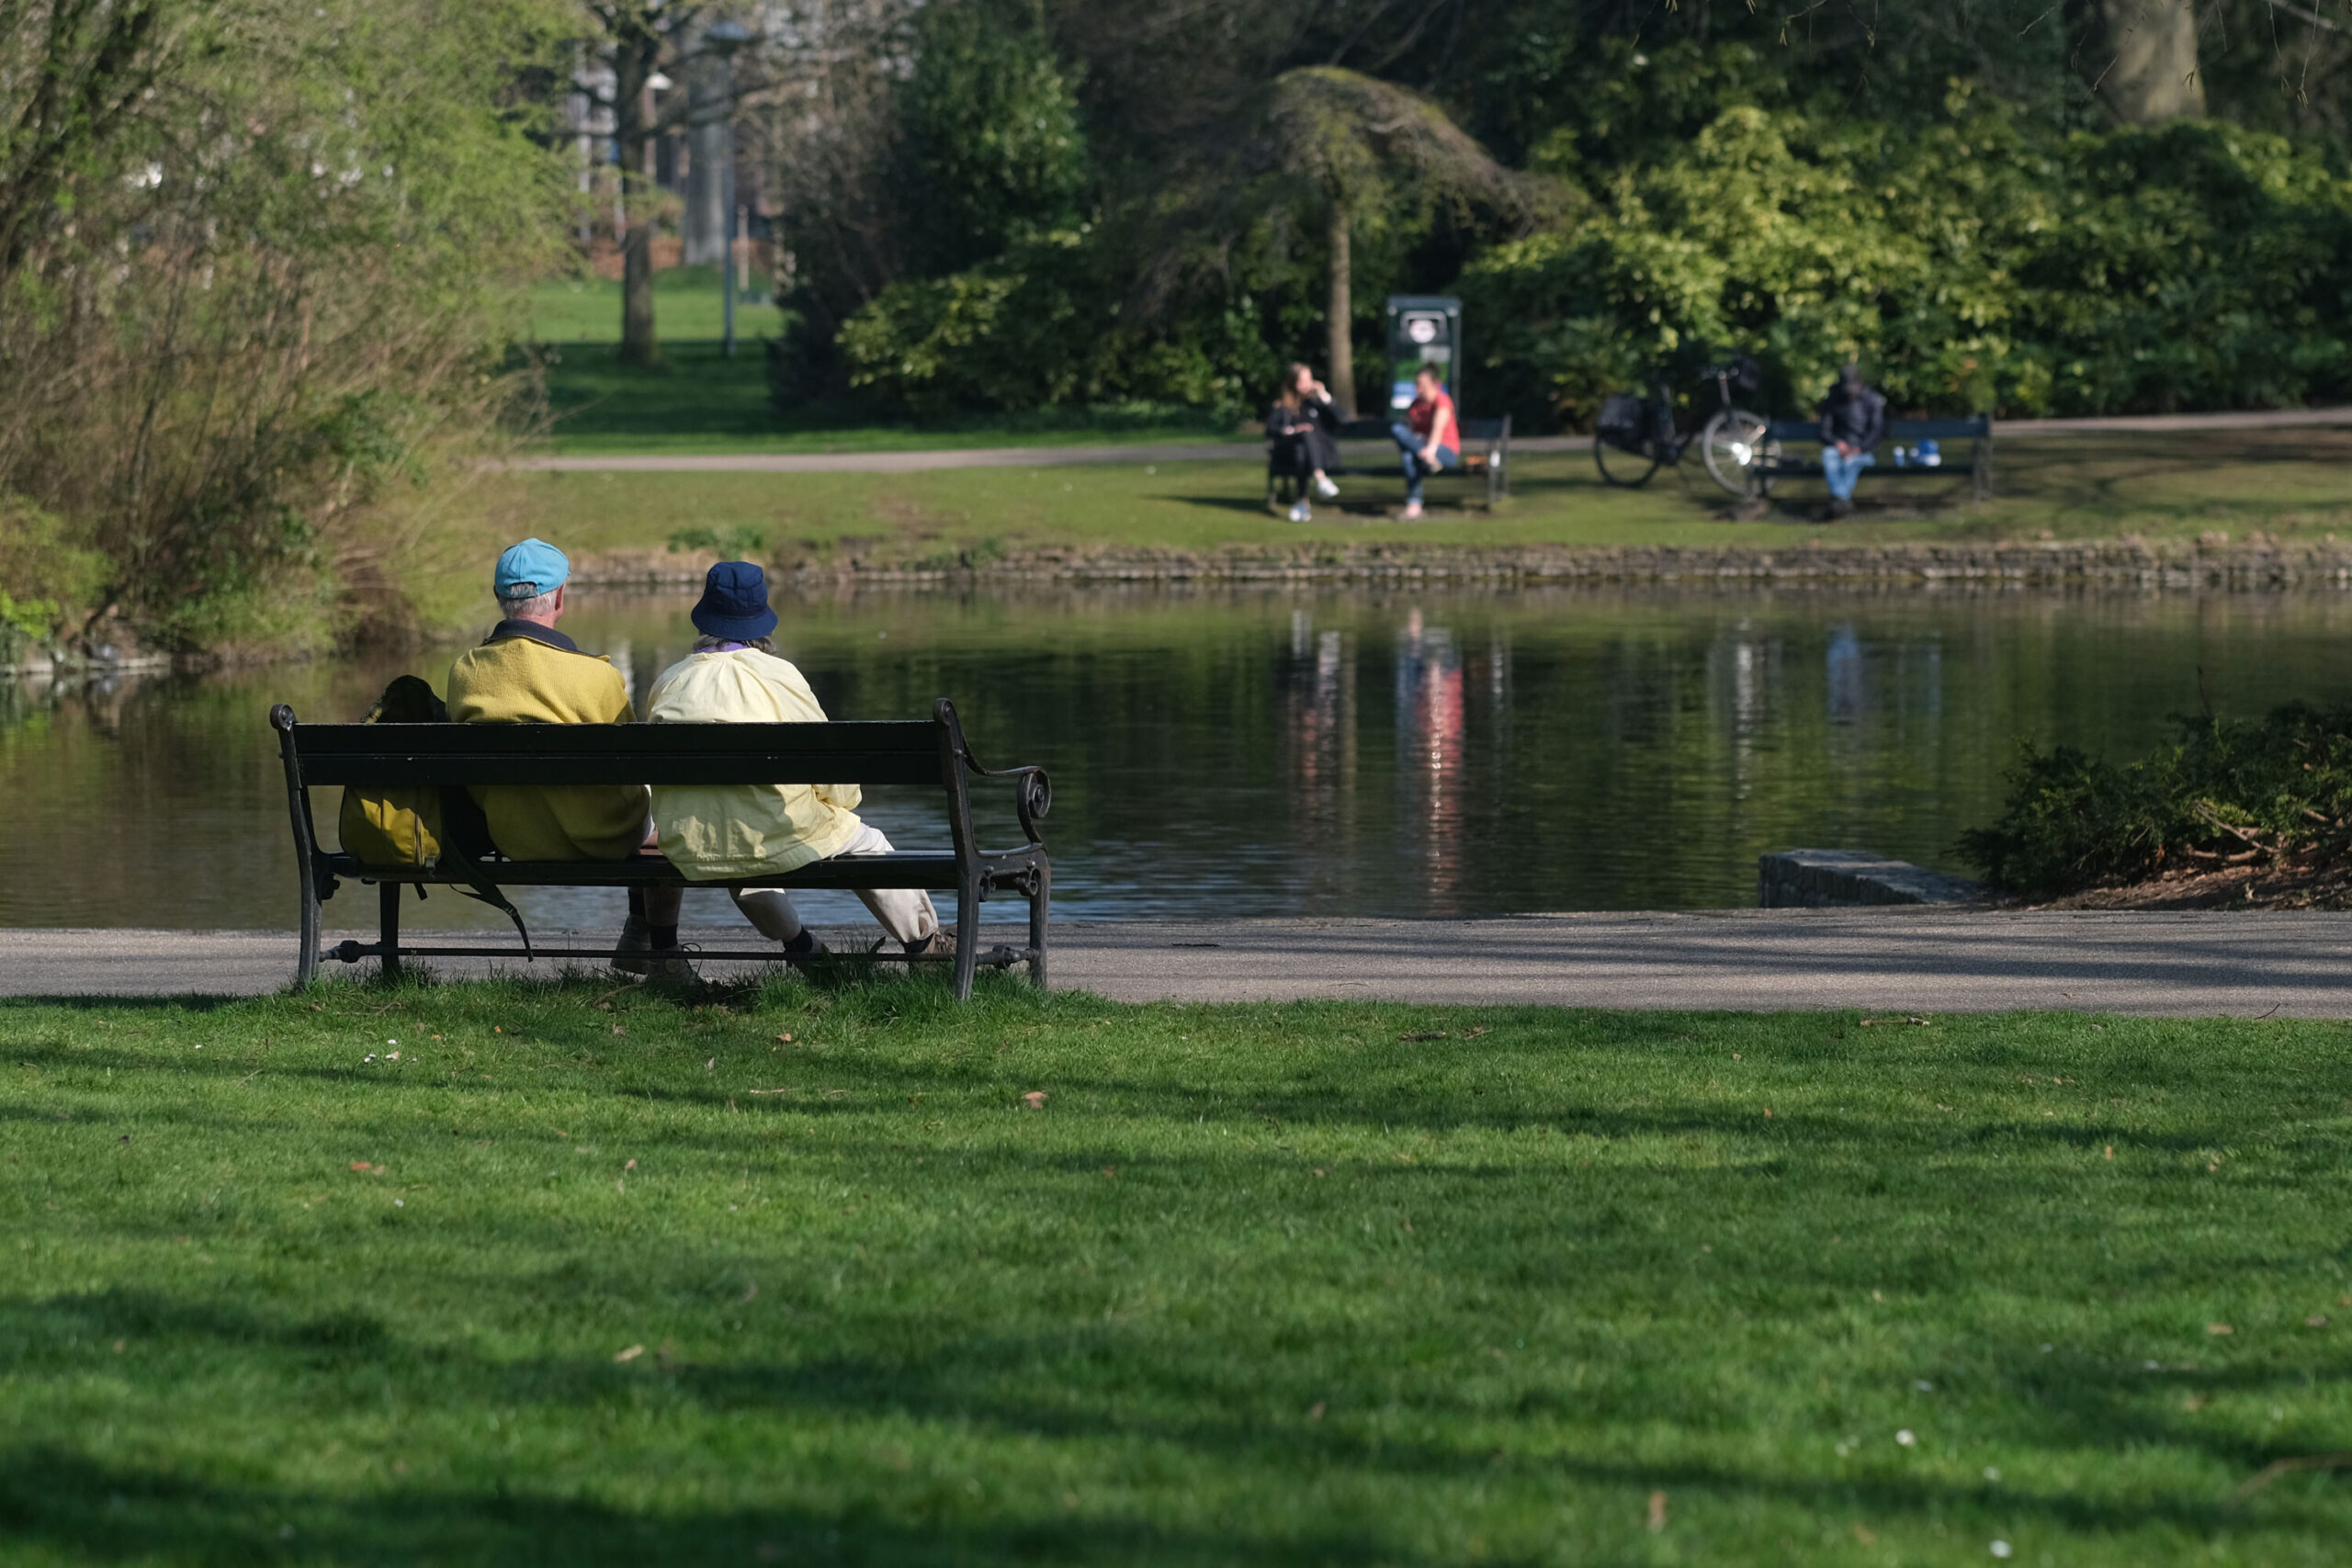 <i>Yuriko Nakao/Getty Images</i><br/>The ultimate niksen: A couple sits on a bench in front of a pond at Wilhelminapark in Utrecht